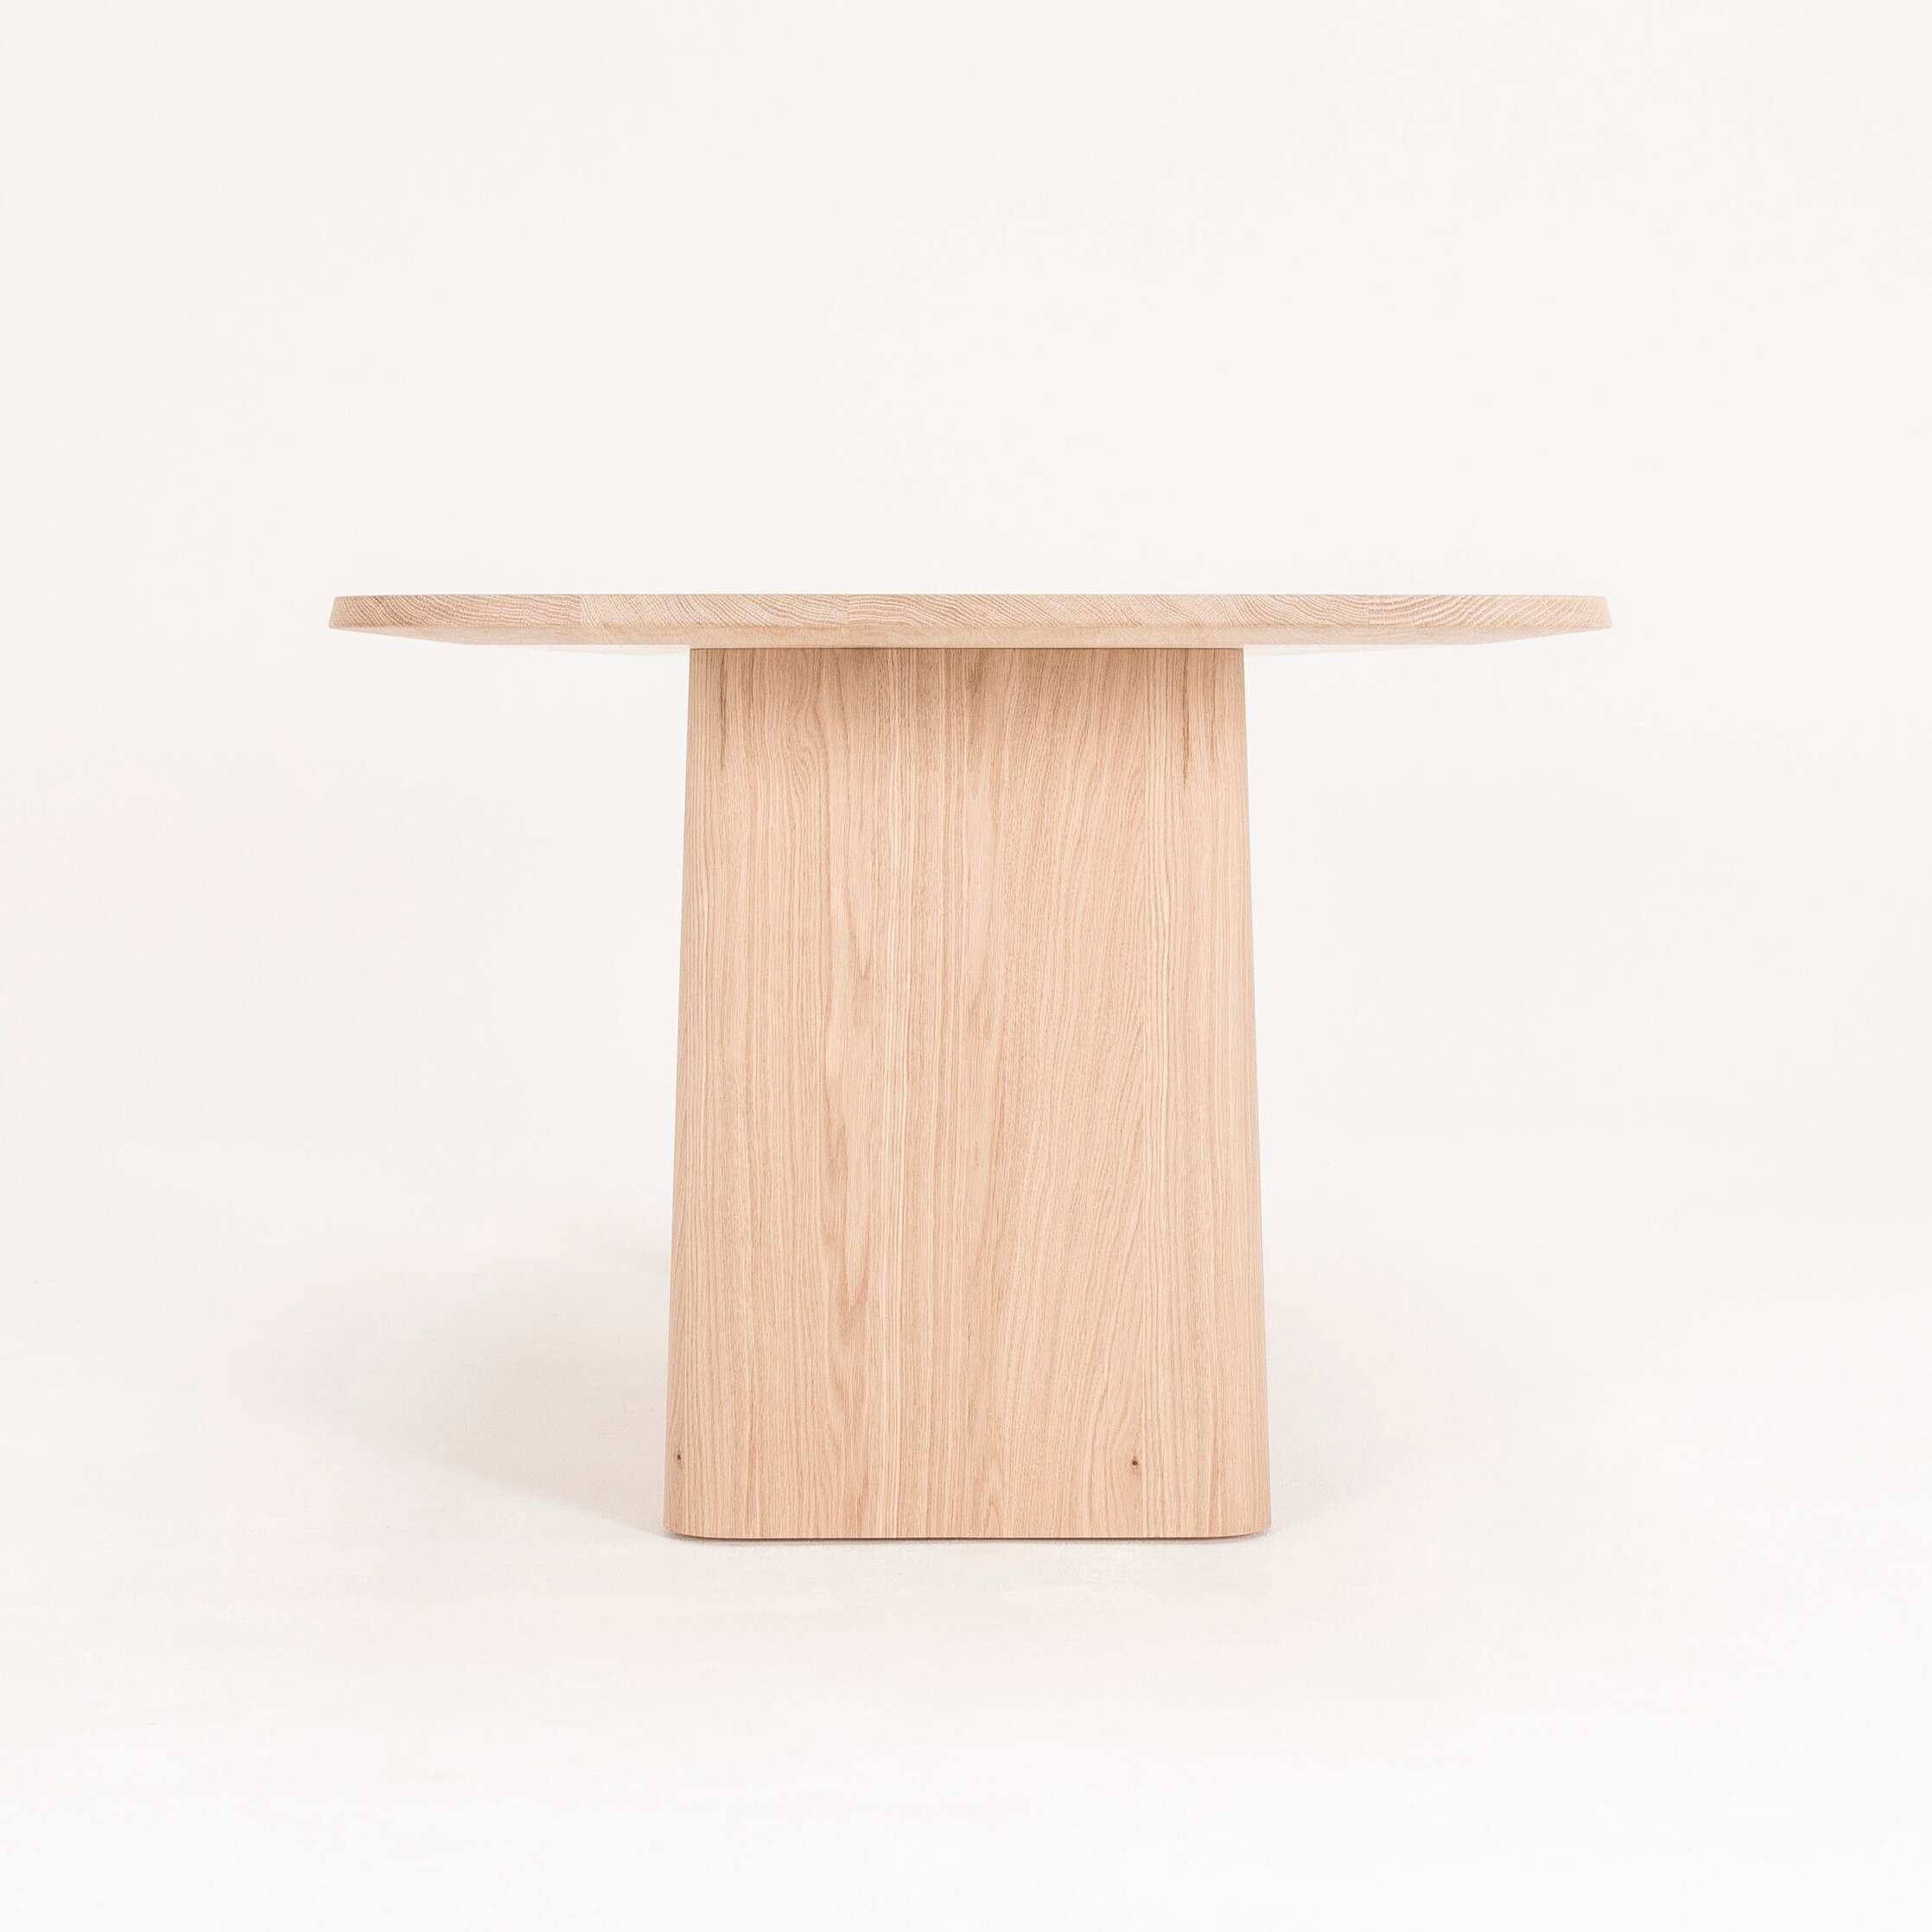 frank-london-collection-table-21-february-2018-0562.jpg